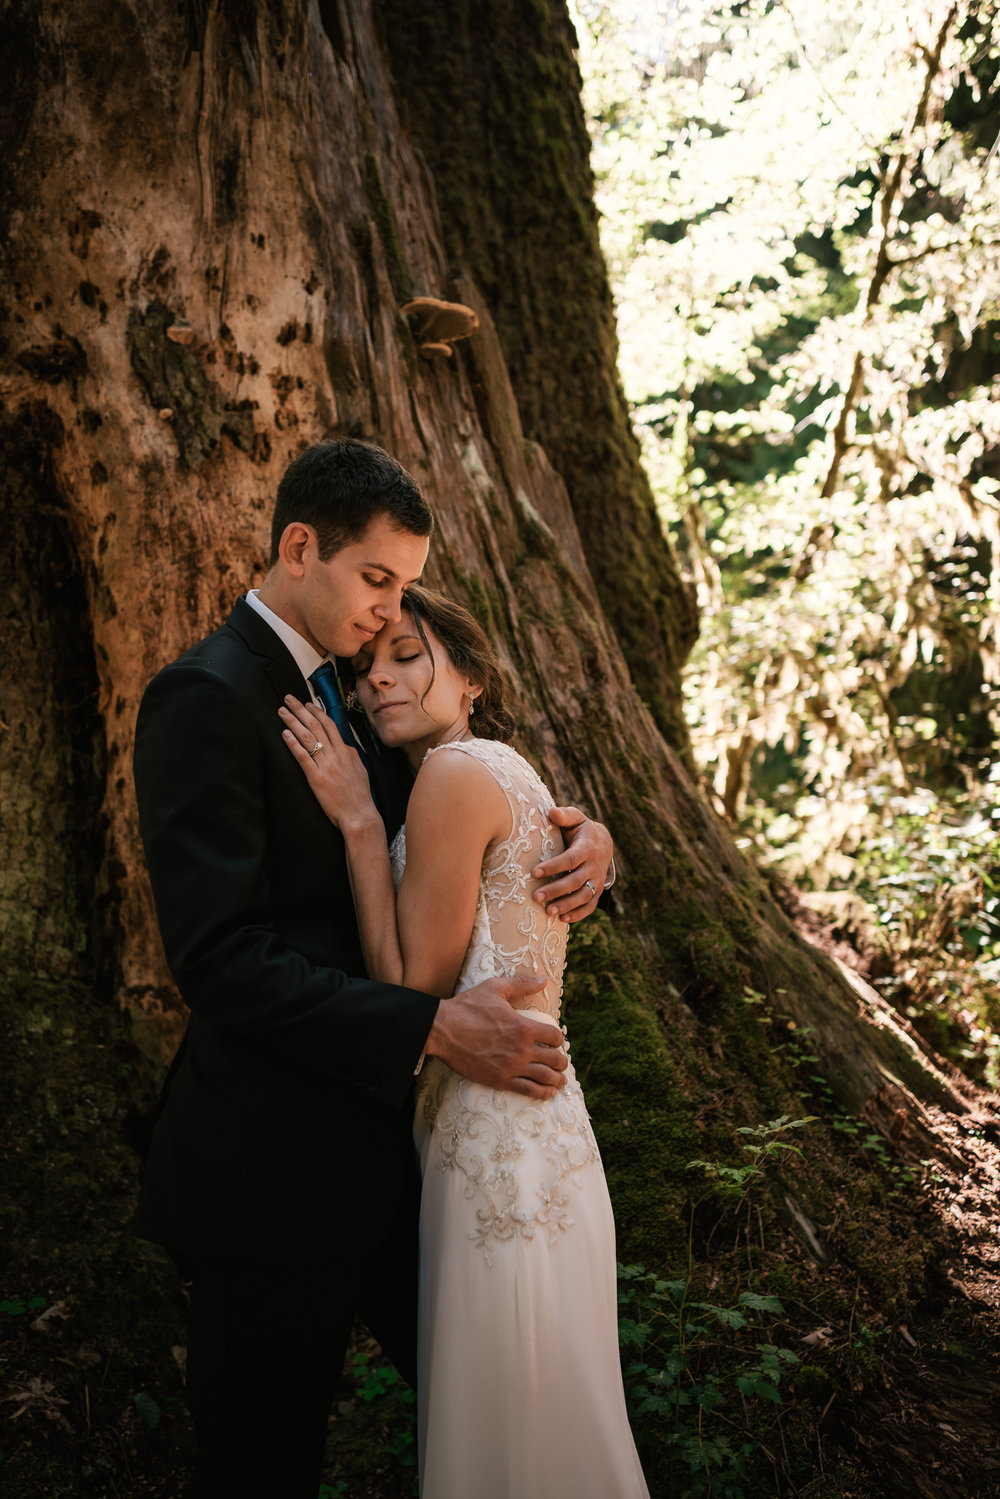 Newlyweds take a moment to enjoy their love after an intimate ceremony in Hoh Rainforest.